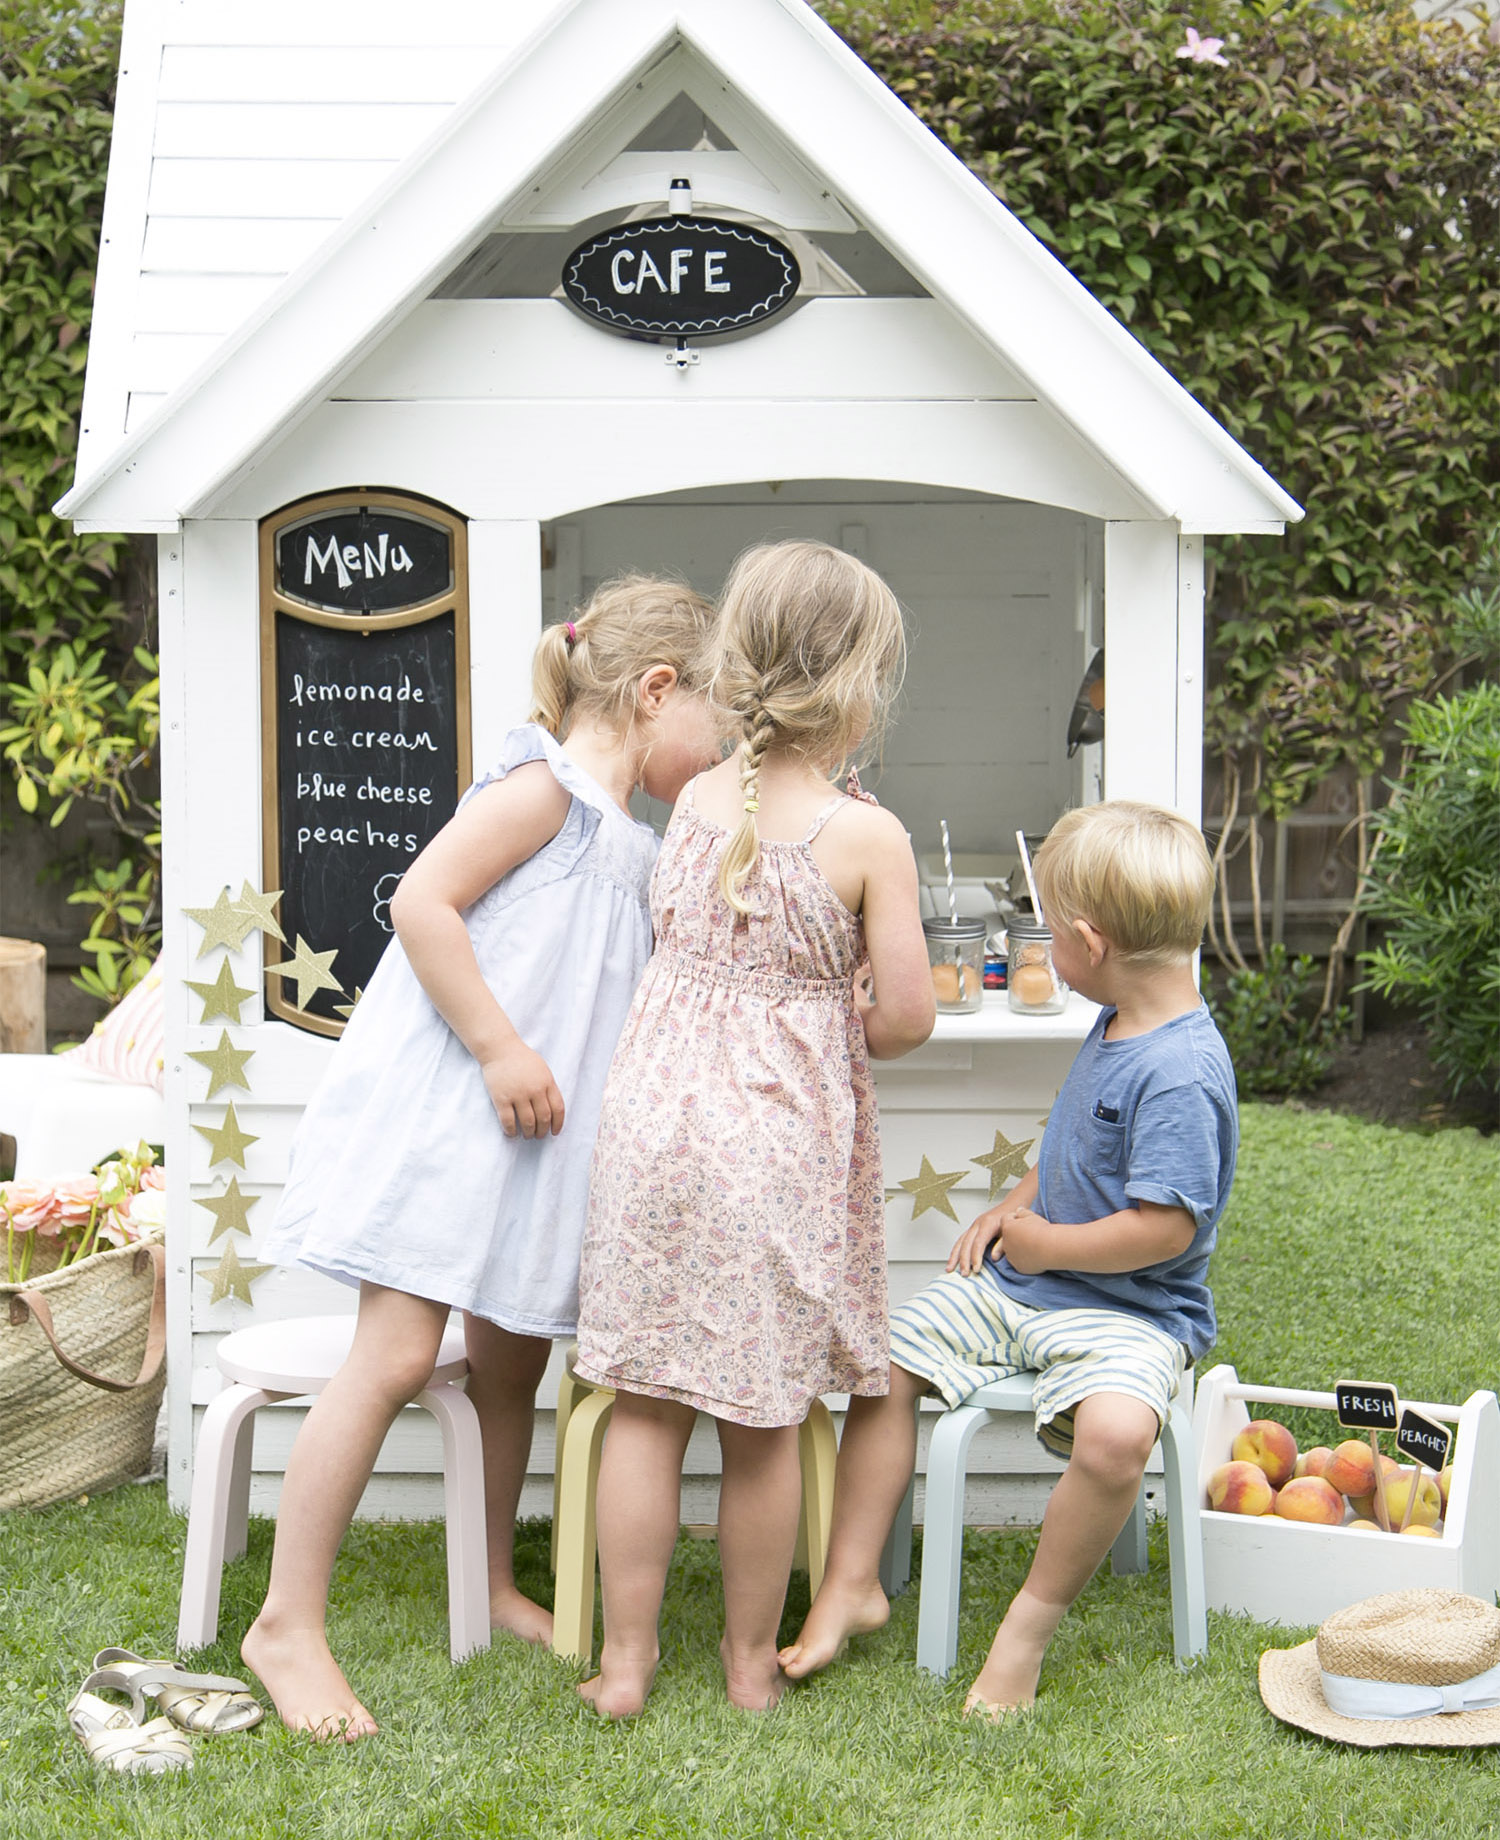 kids playing with outdoor playhouse